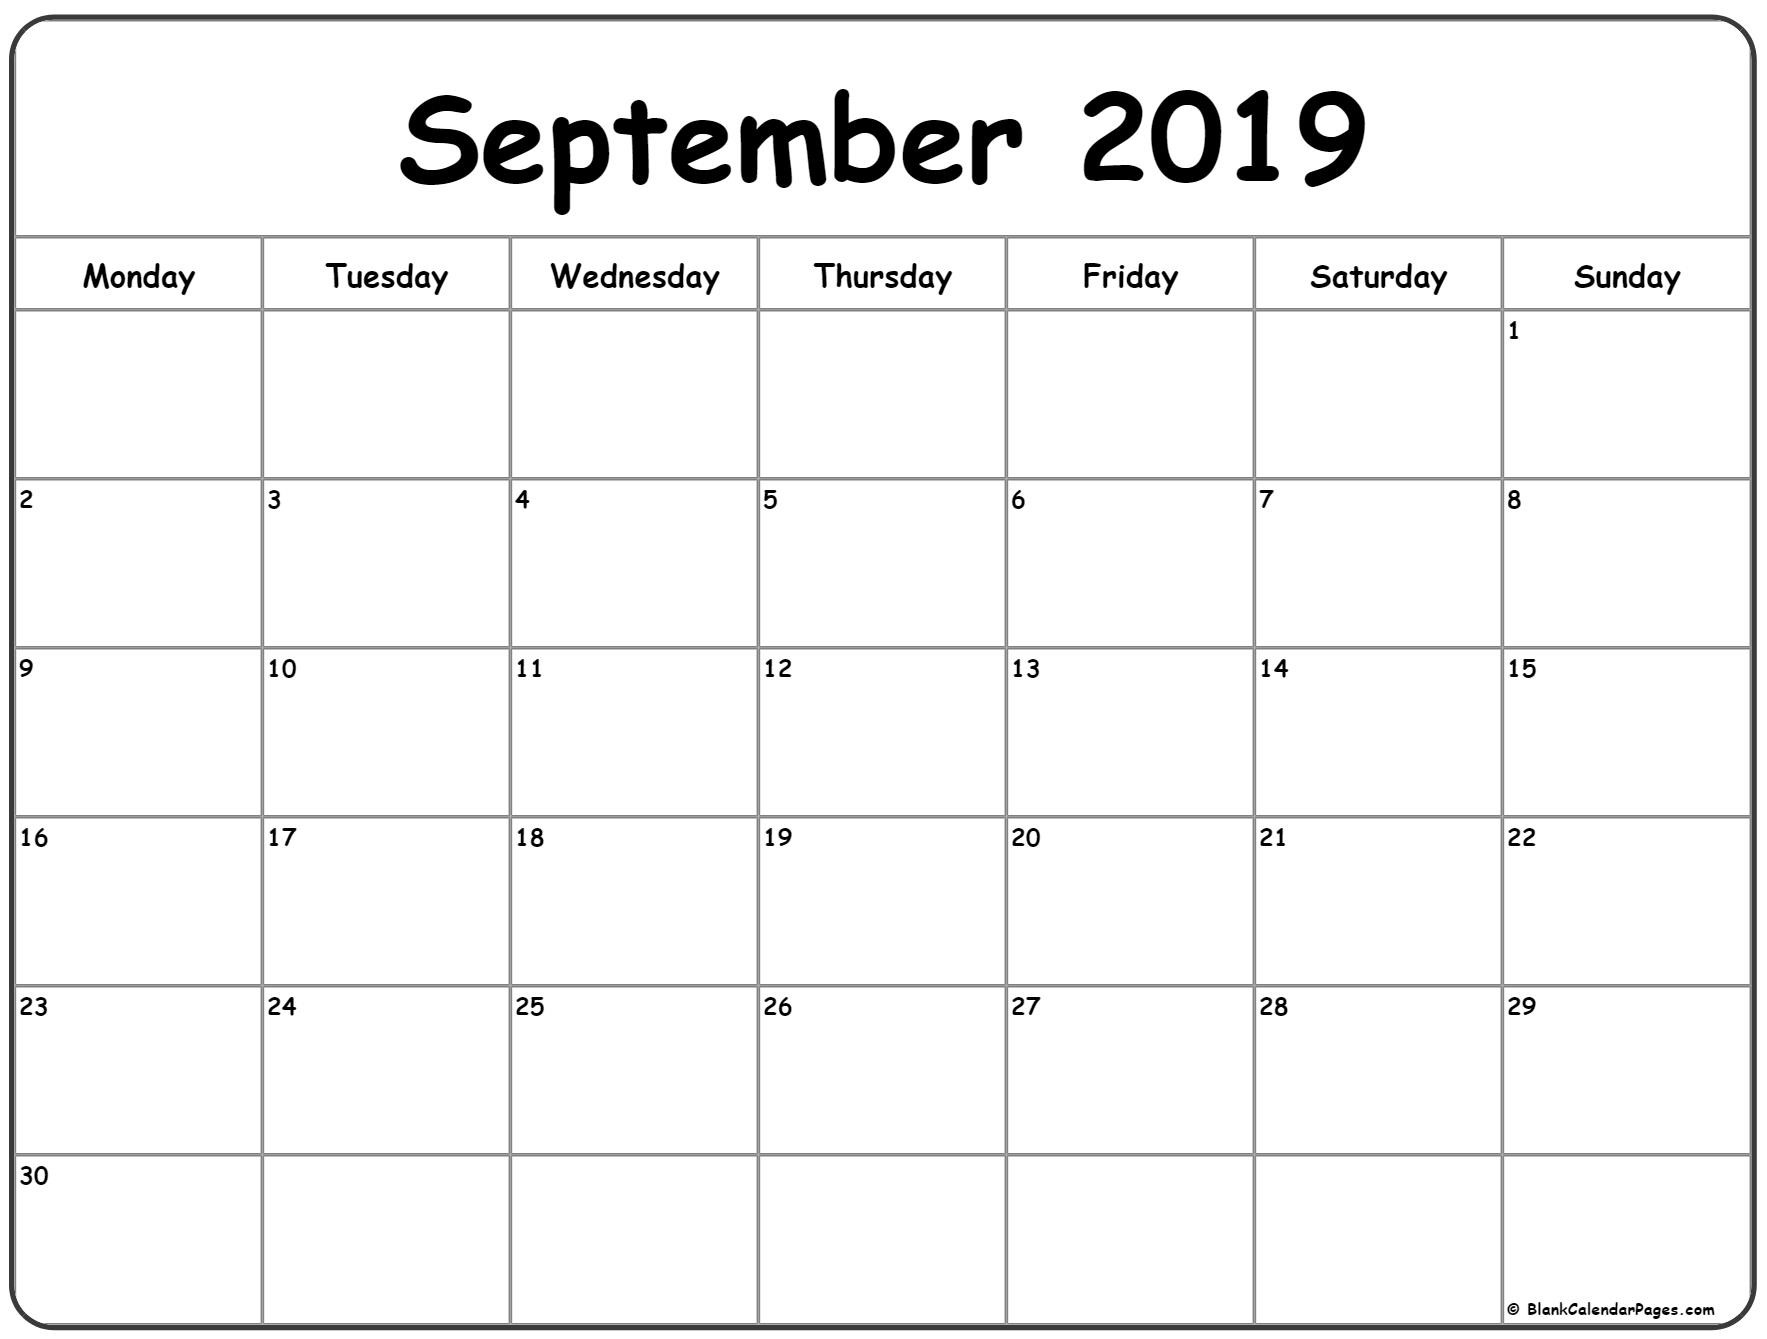 September 2019 Monday Calendar | Monday To Sunday  September Calendar Beginning With Mondays